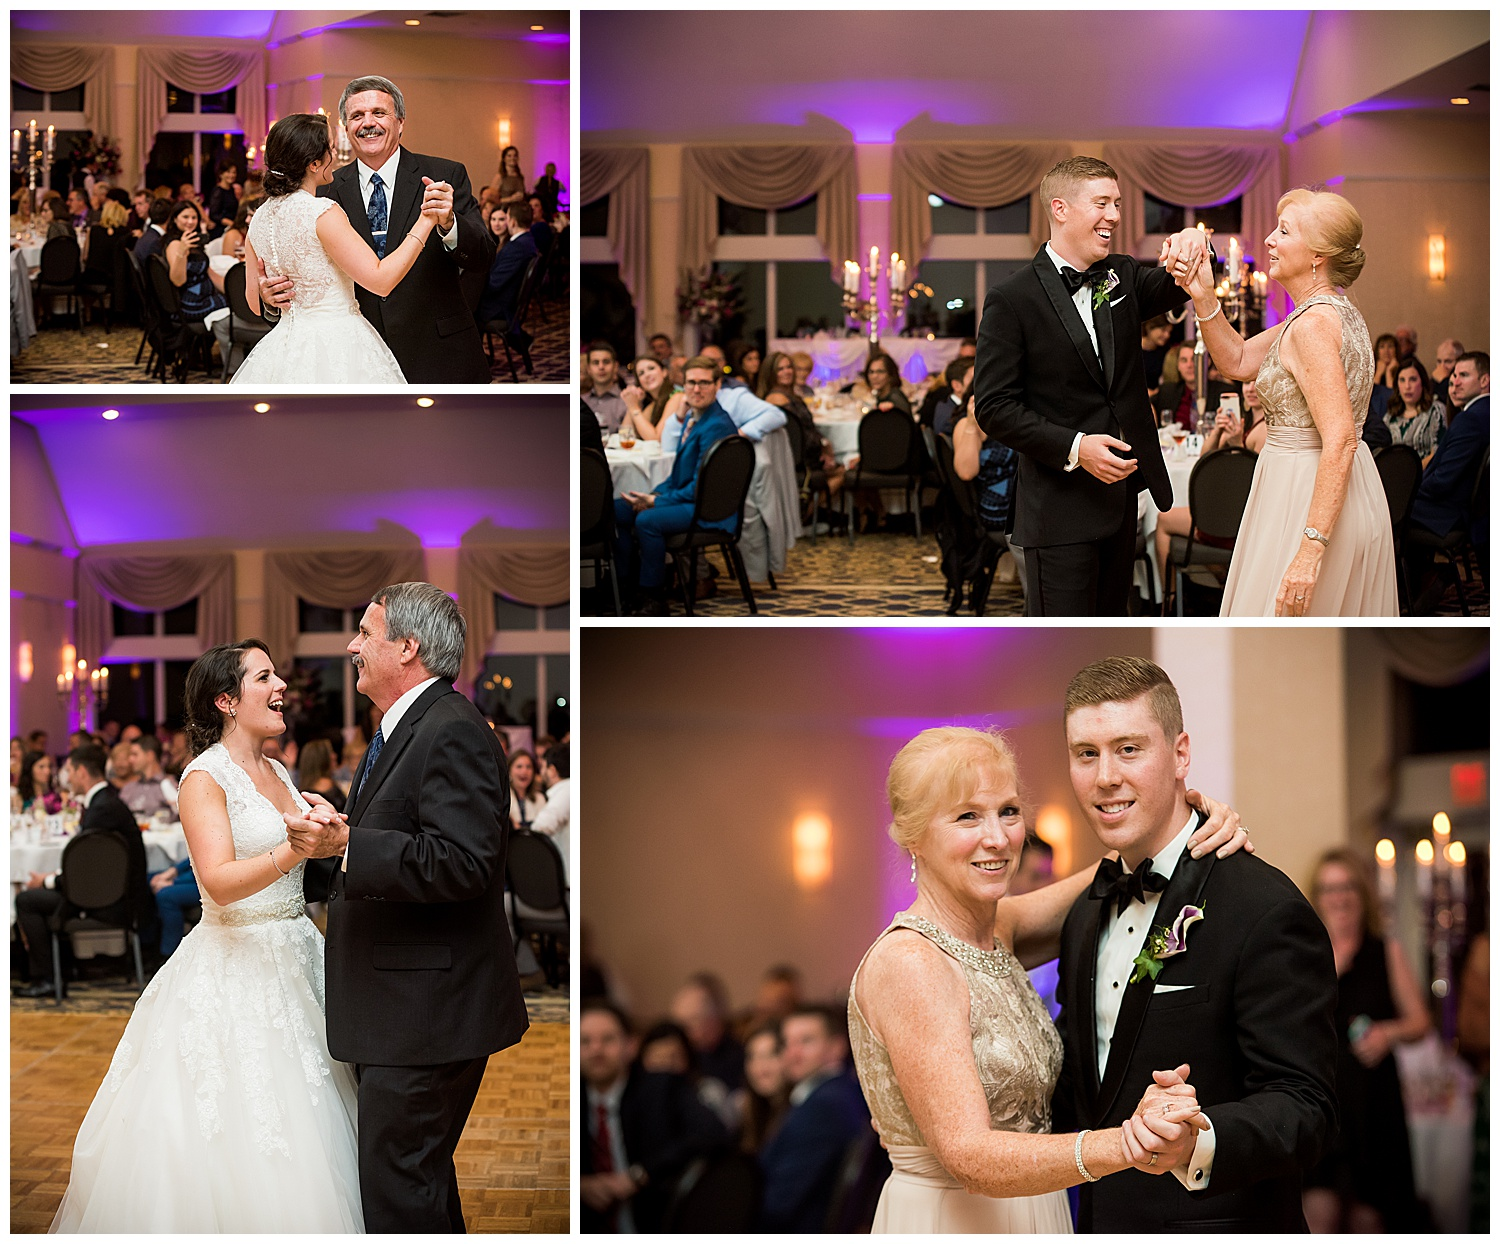 Atkinson Resort & Country Club - Ballroom Reception